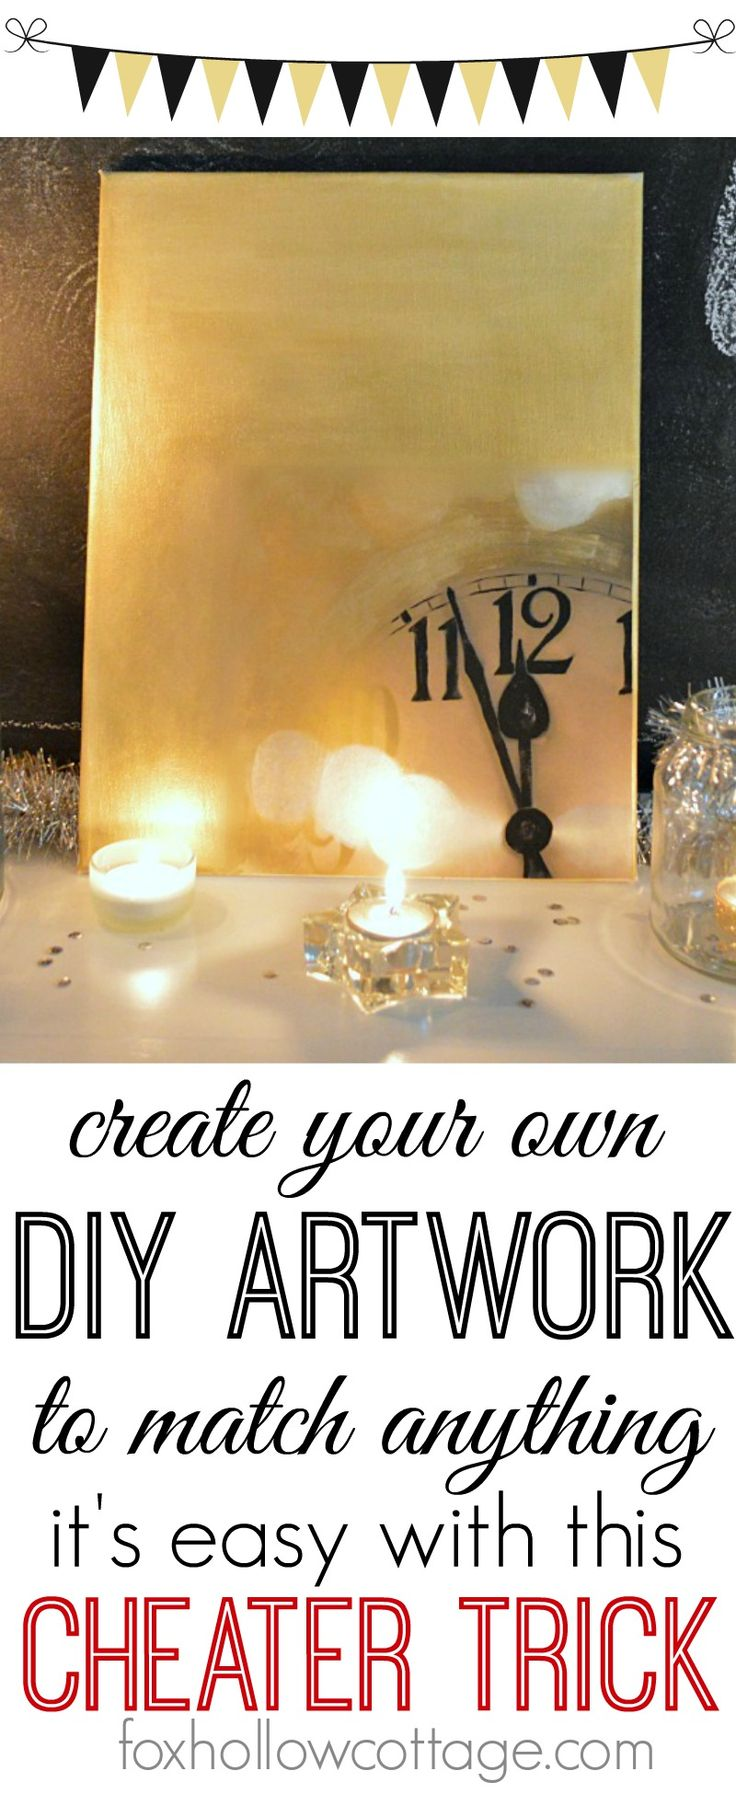 372 best Cool DIY Wall Art images on Pinterest | Spikes, Woodworking ...